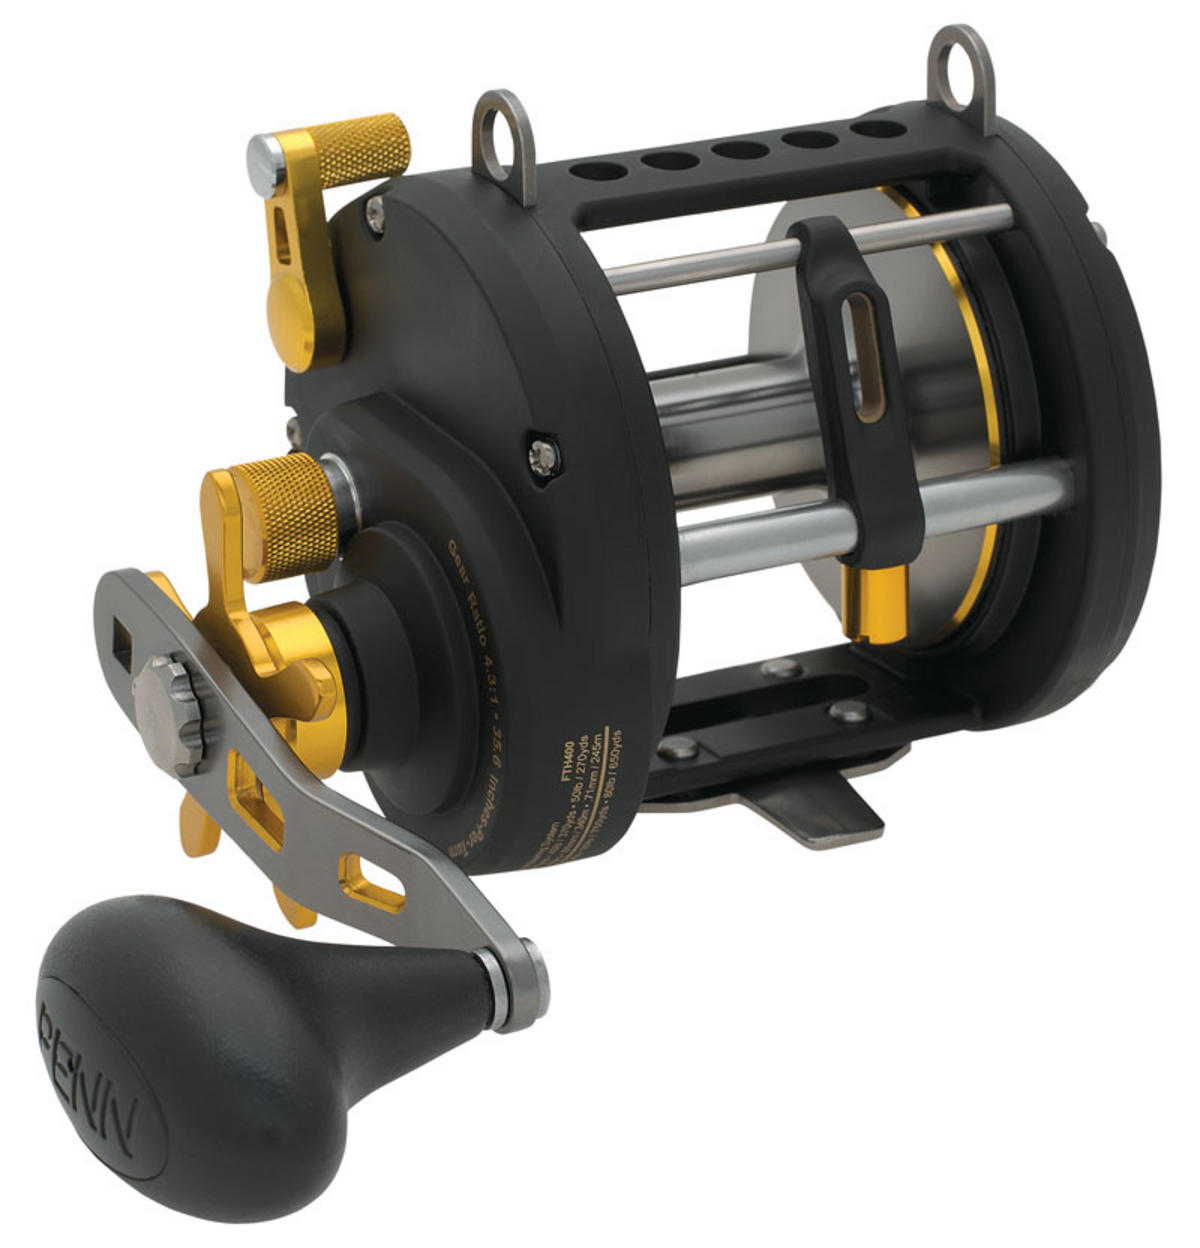 PENN FATHOM 40 LEVEL WIND MULTIPLIER FISHING REEL FTH40LW 1206091